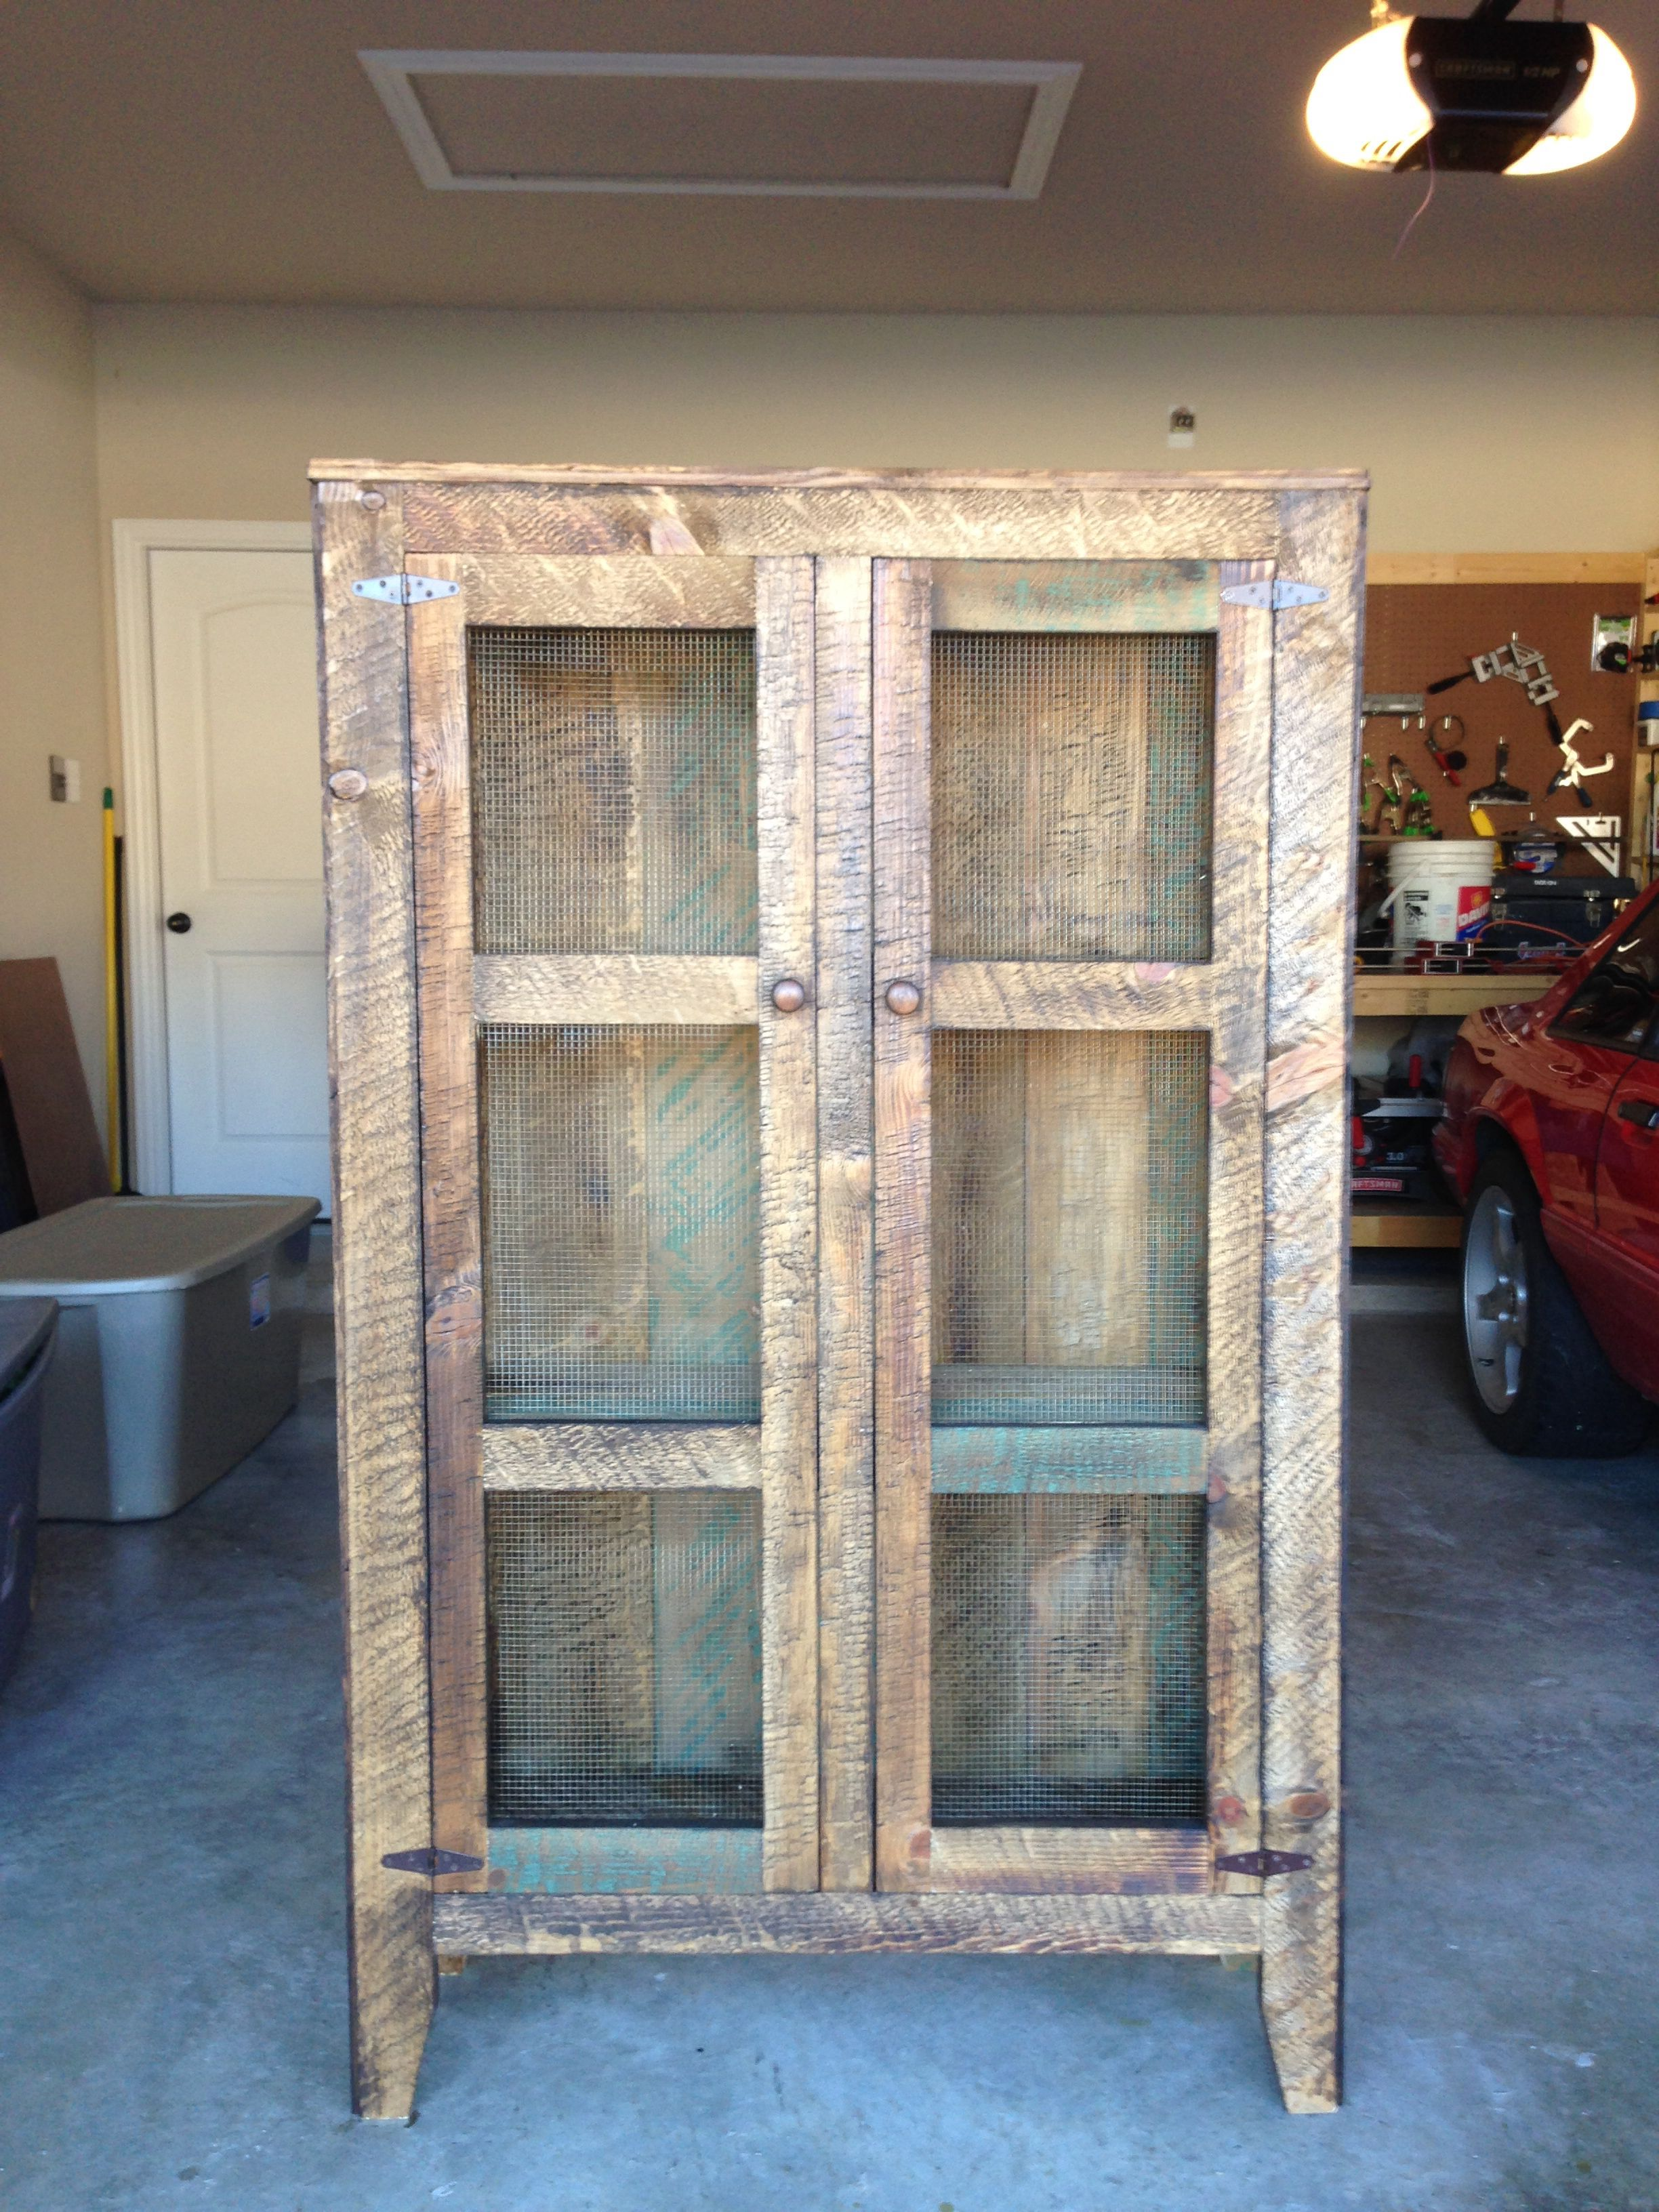 Images about old barn wood furniture on pinterest - Pie Safe Made From Old Barn Wood